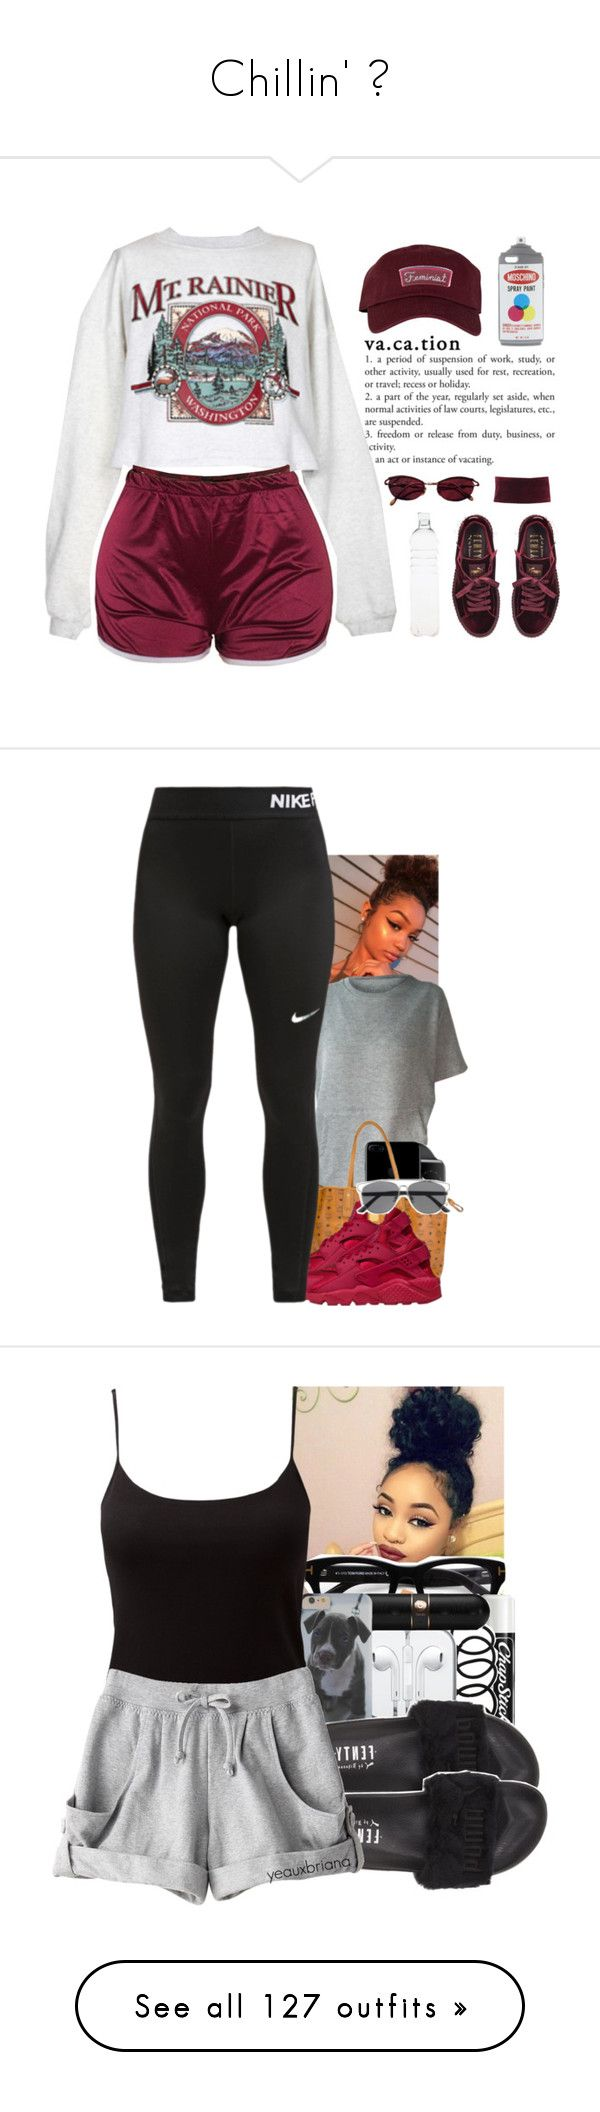 Chillin ✨ by deany ❤ liked on Polyvore featuring The High Rise, Puma, Boohoo, Jean-Paul Gaultier, Seletti, Moschino, MCM, NIKE, Tom Ford and Chapstick